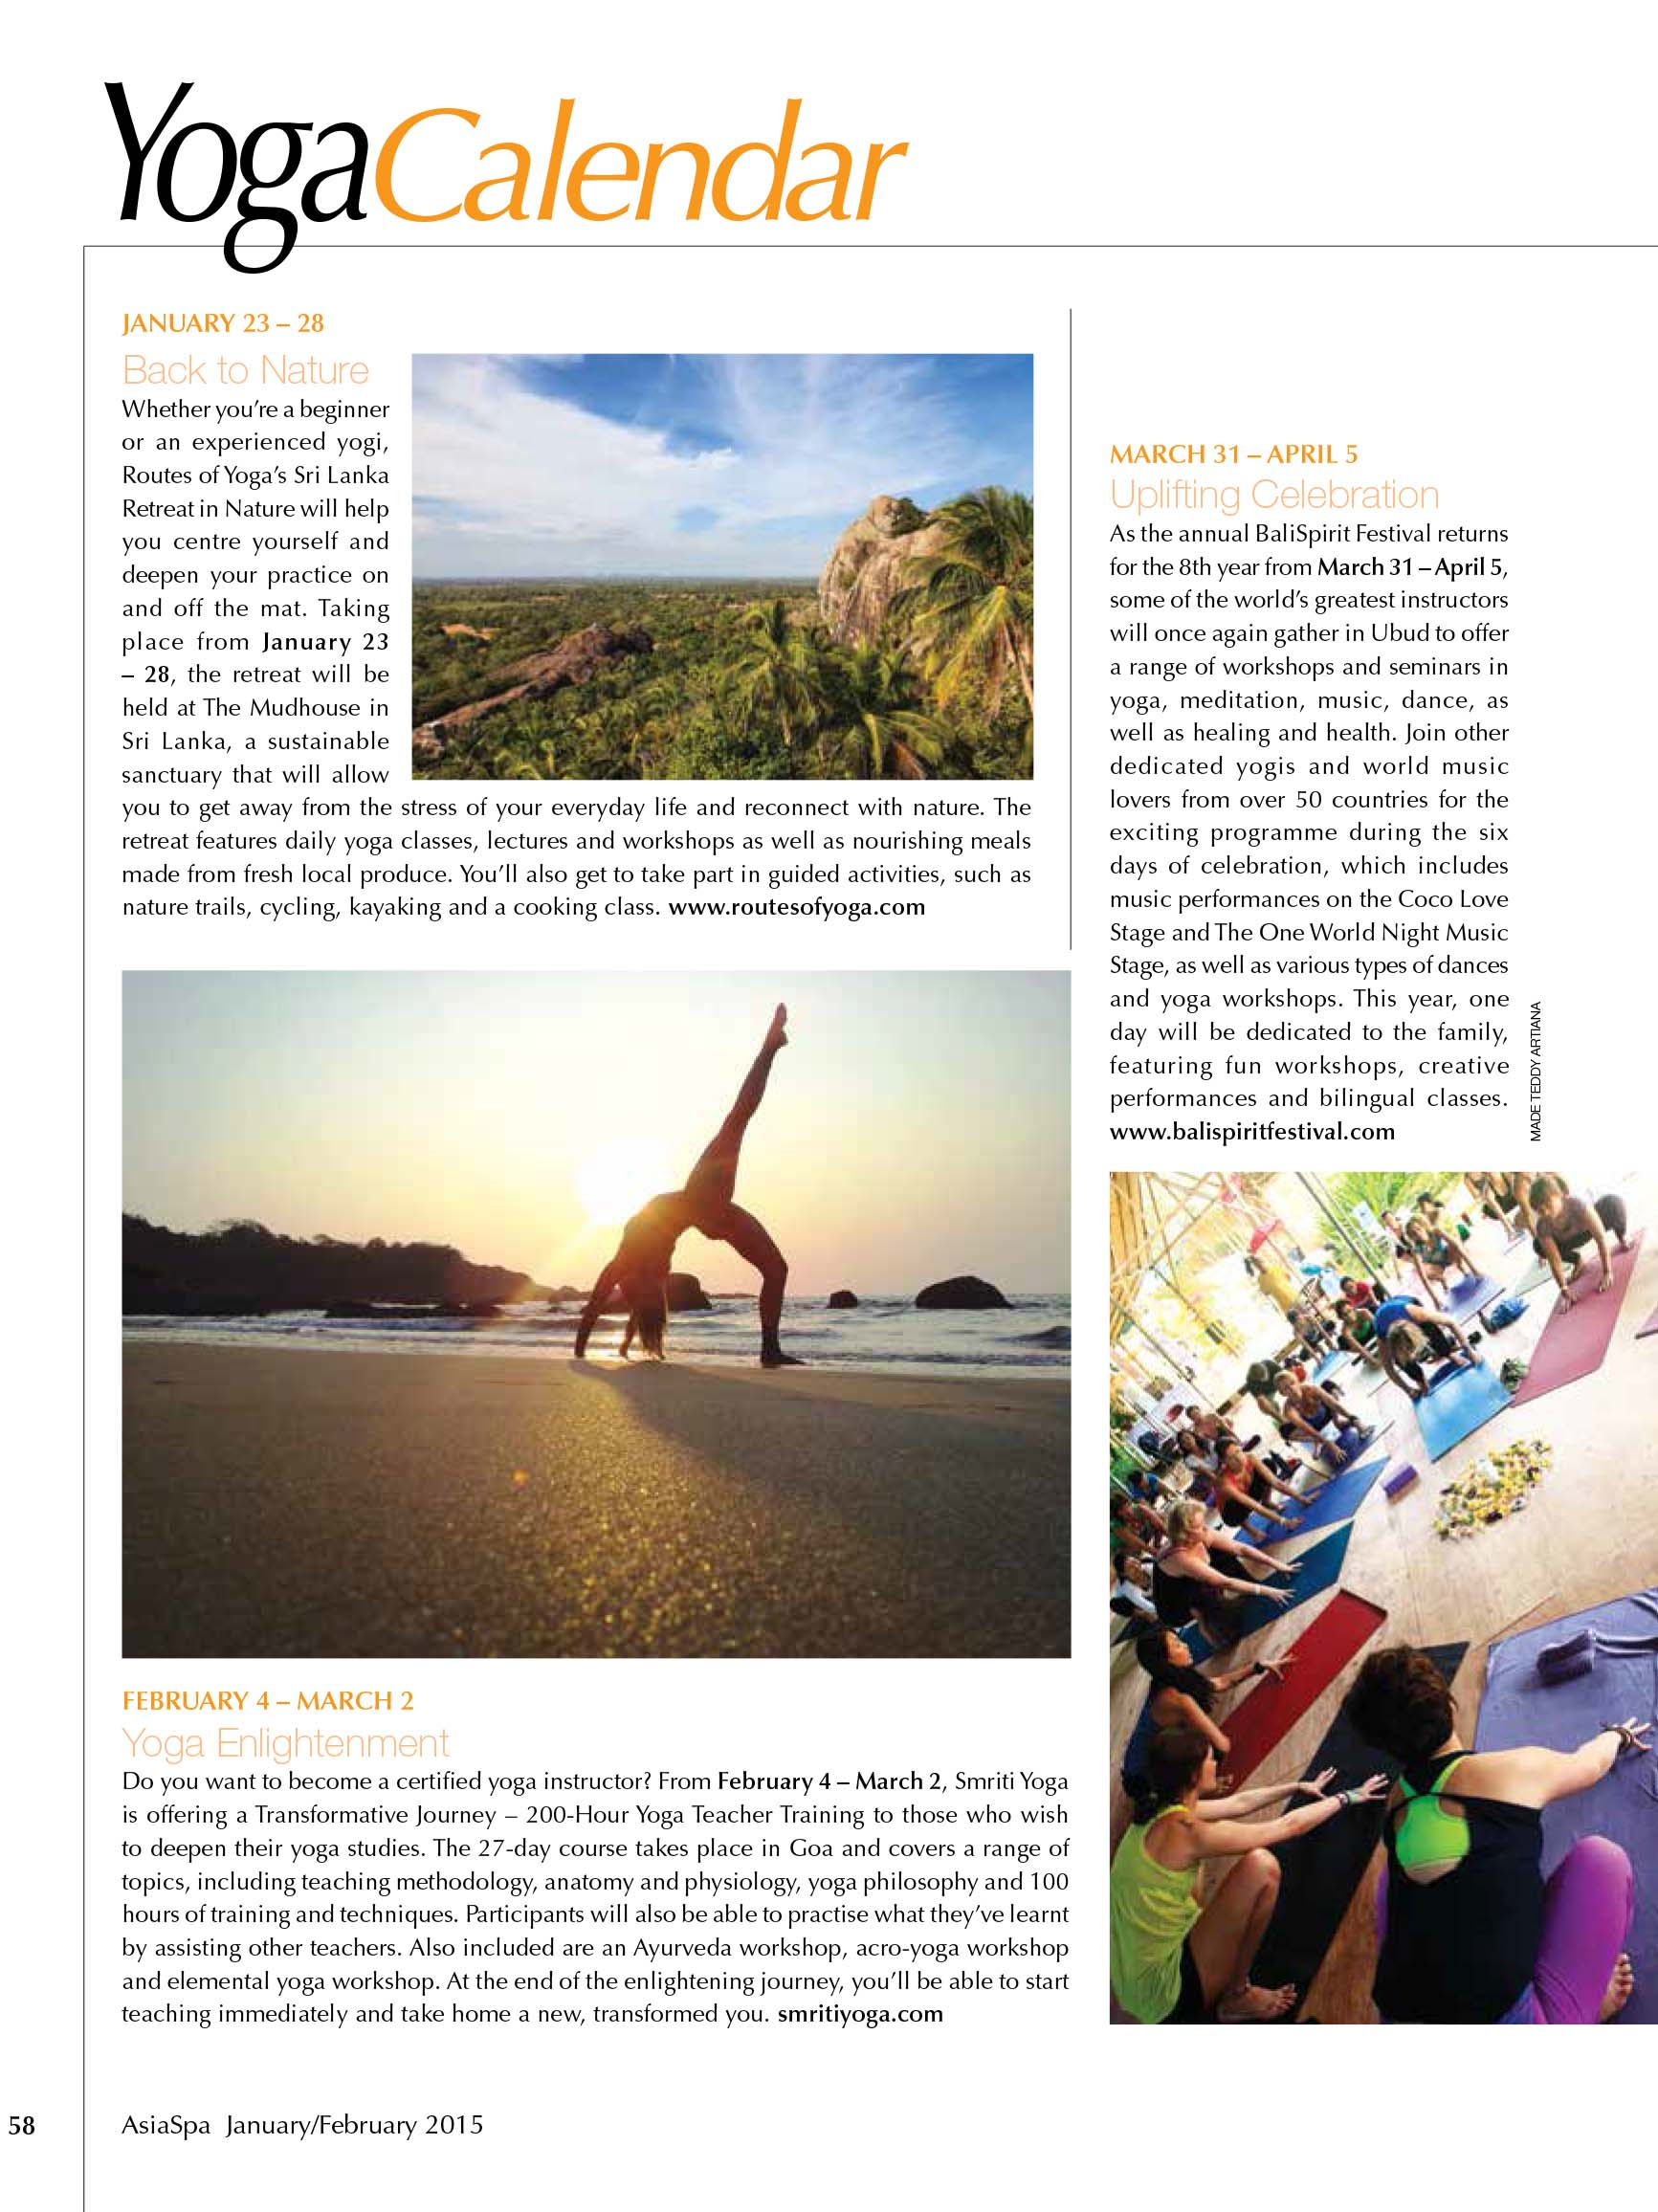 Routes of Yoga Sri Lanka Yoga Retreat Feature